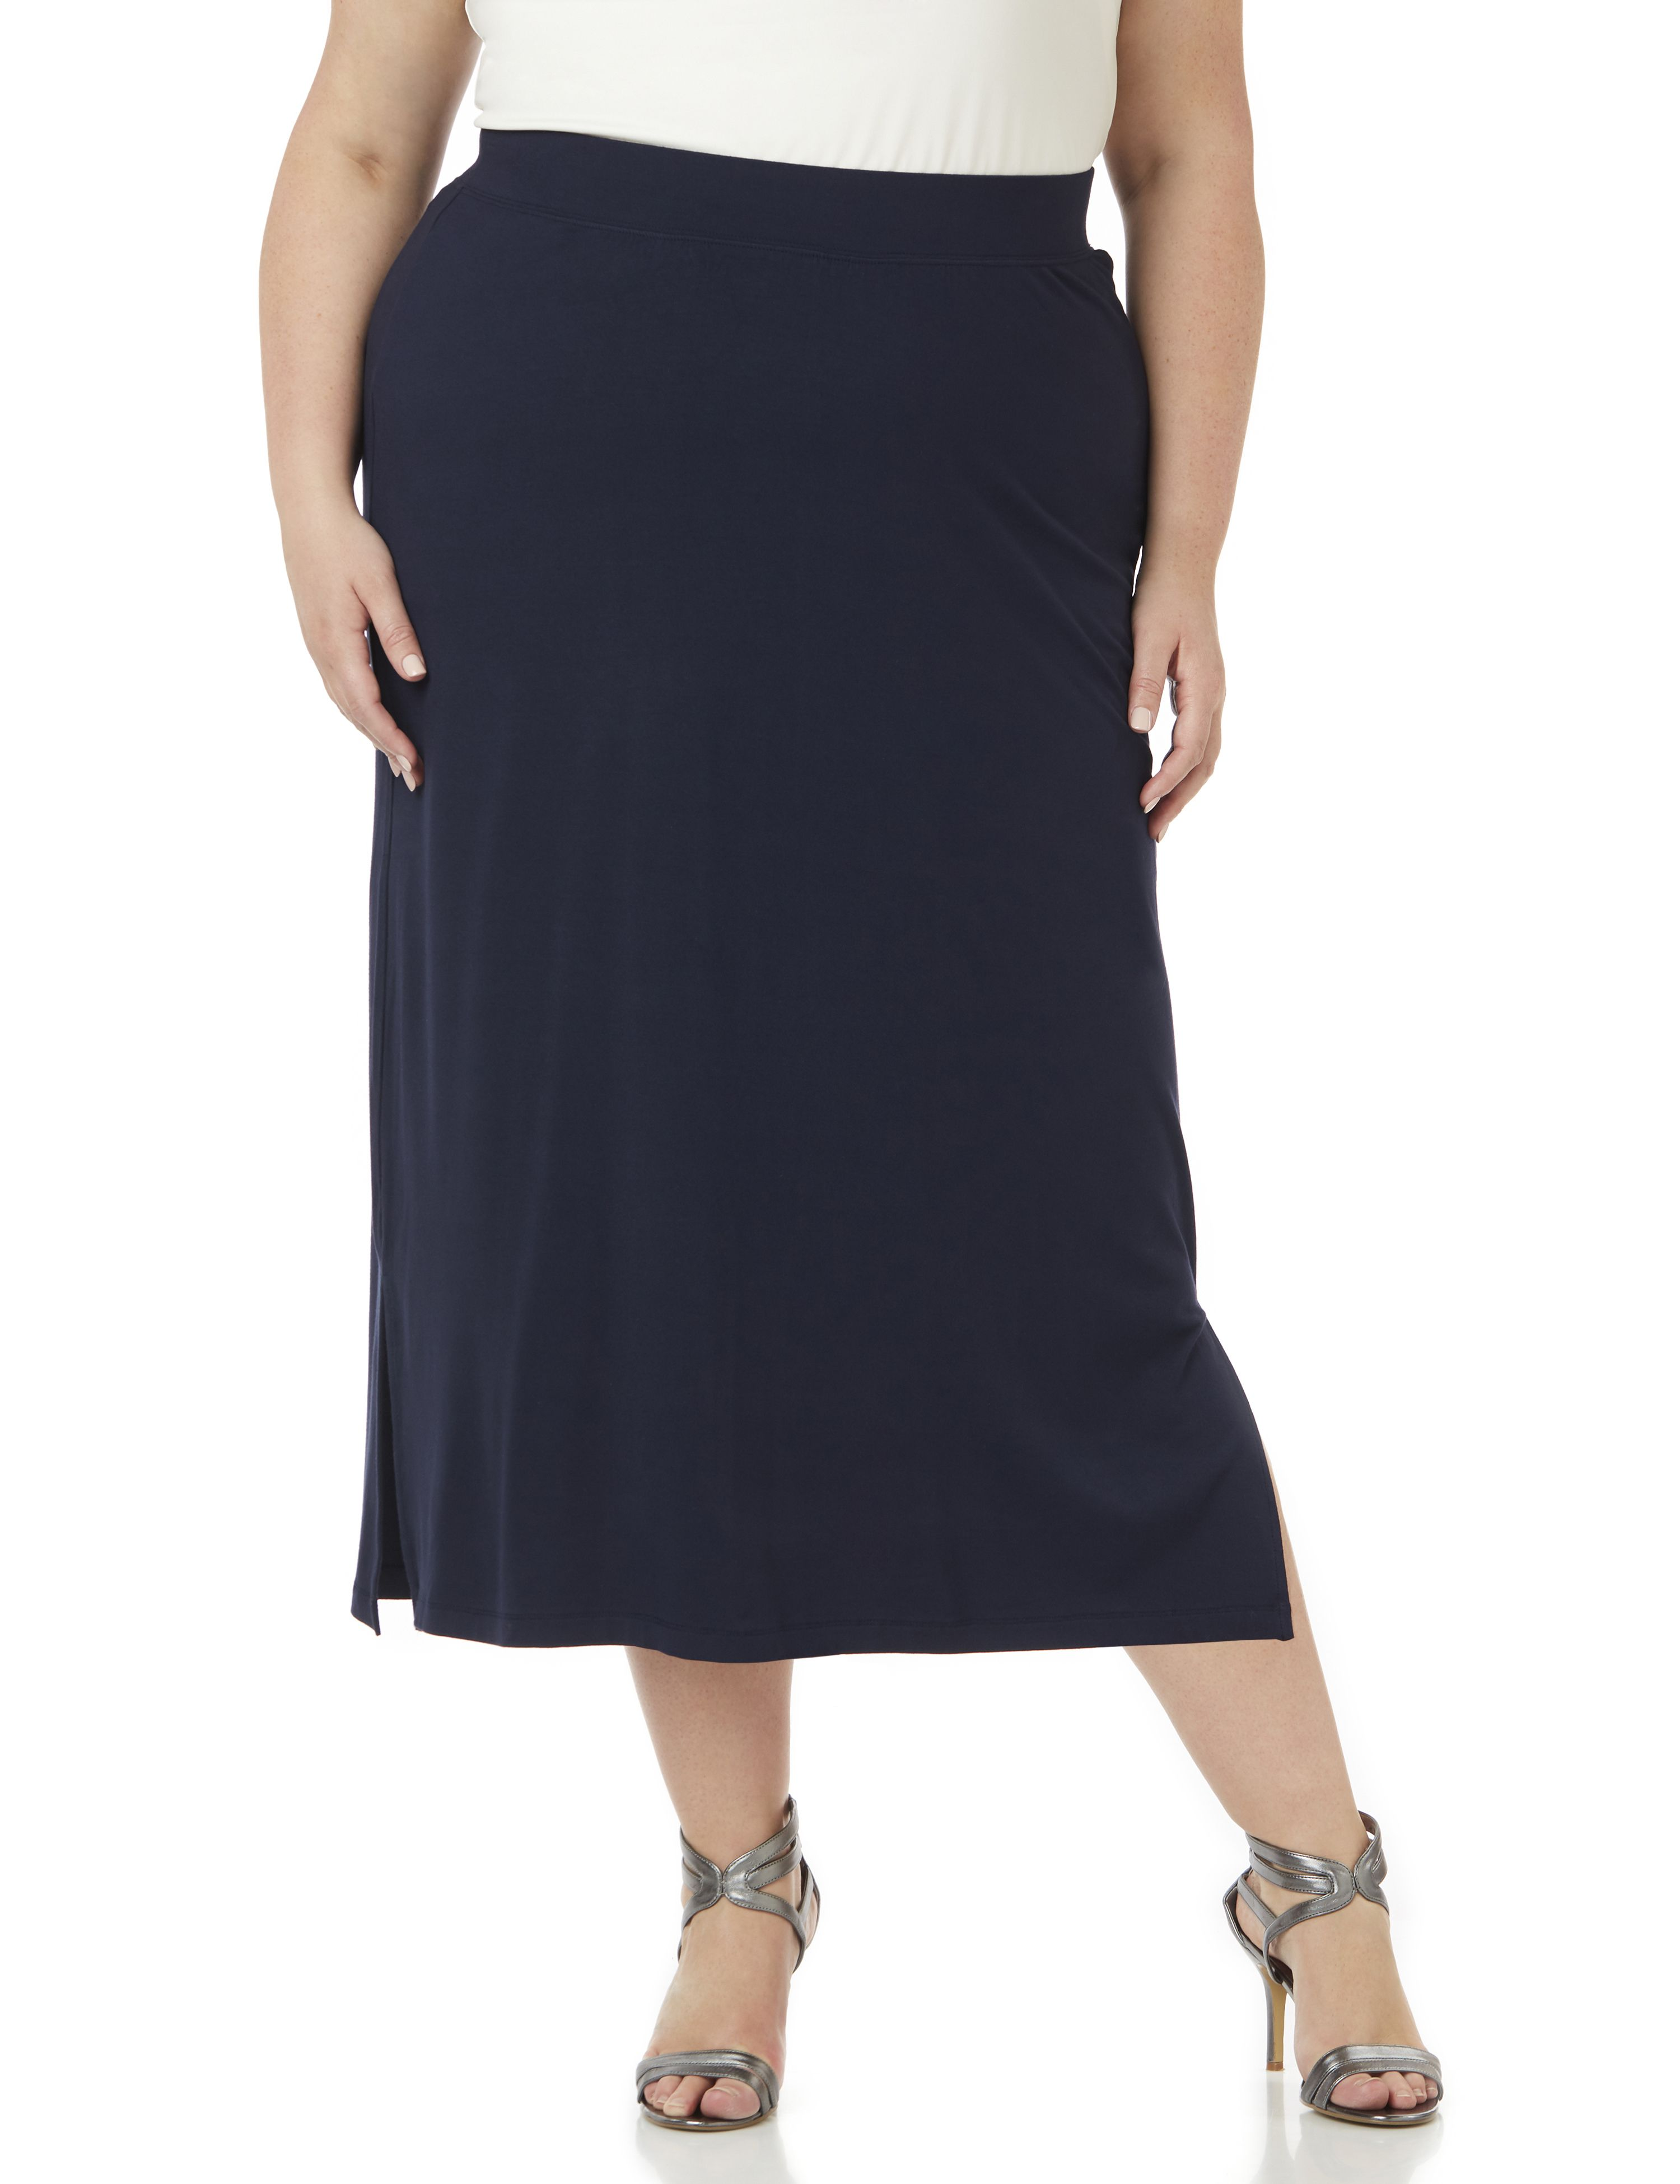 1950s Plus Size Dresses, Clothing | Pinup Fashion AnyWear Midi Skirt $46.99 AT vintagedancer.com